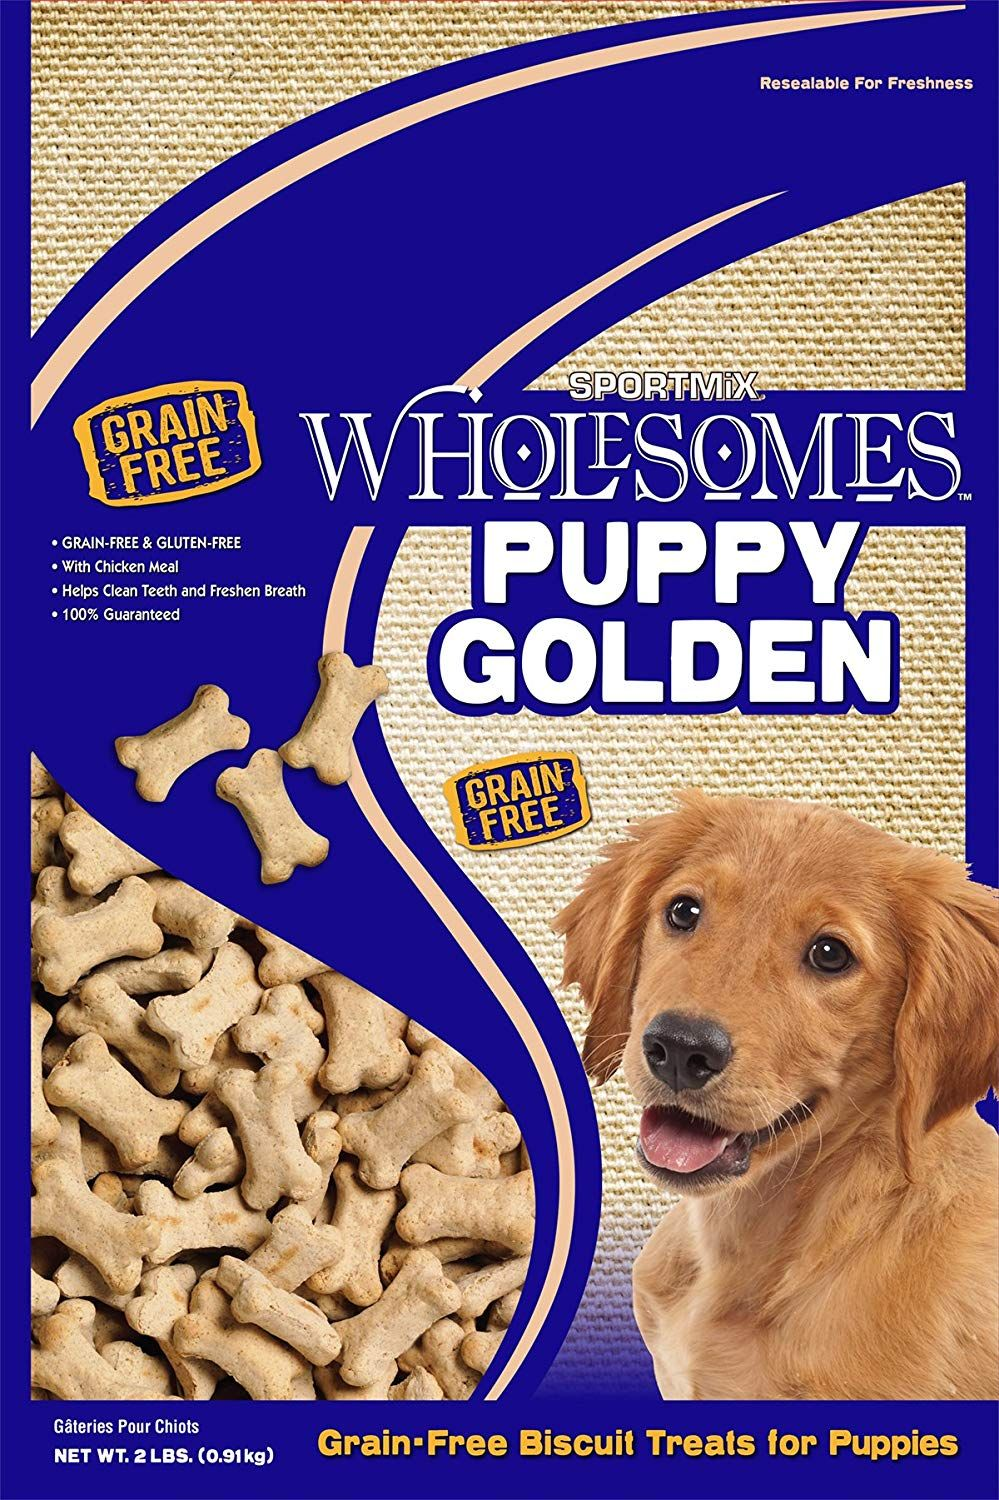 Midwestern Sportmix Premium Select Puppy Golden Biscuit Treats